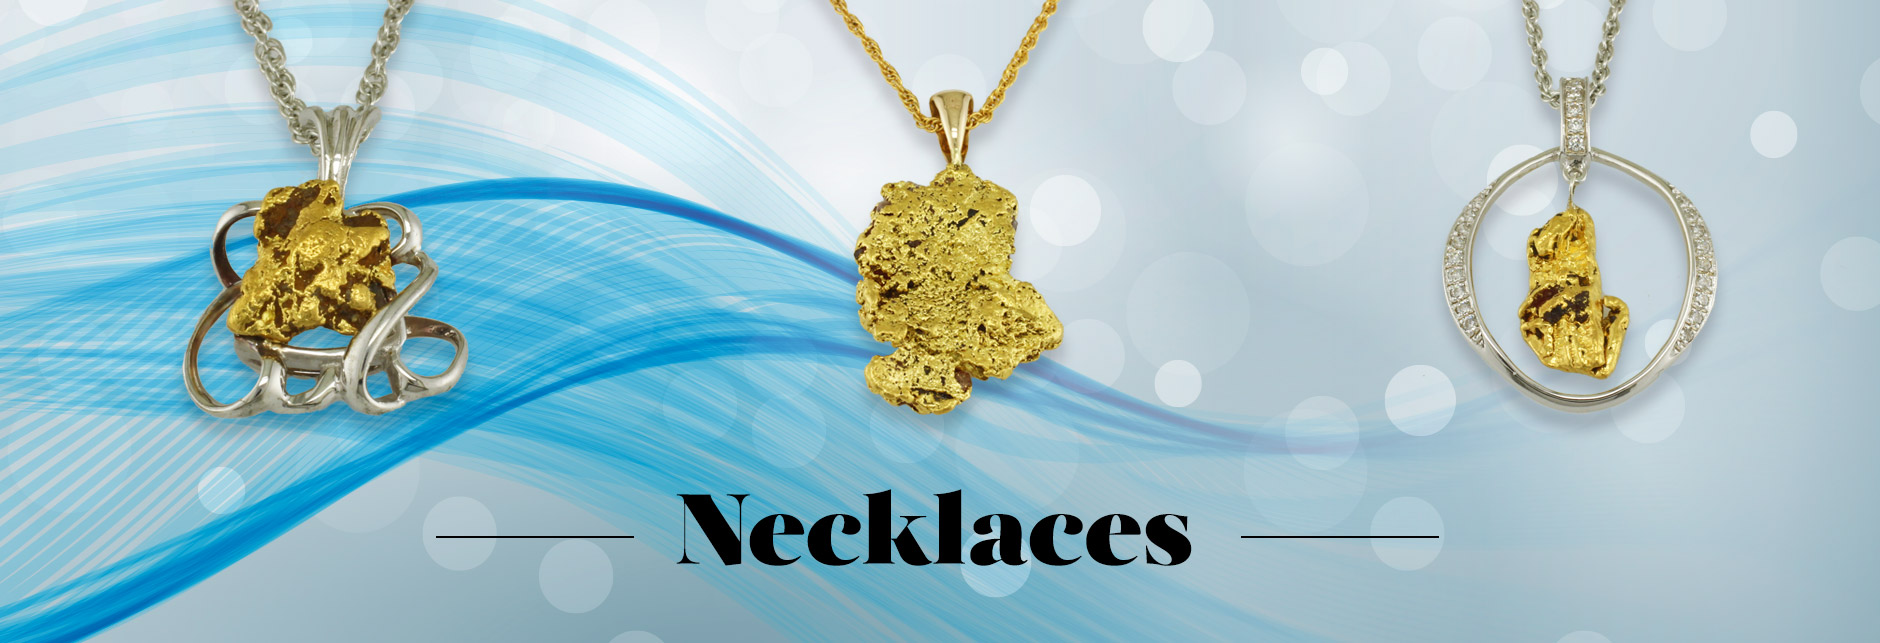 nugget-necklace-header-pic.jpg